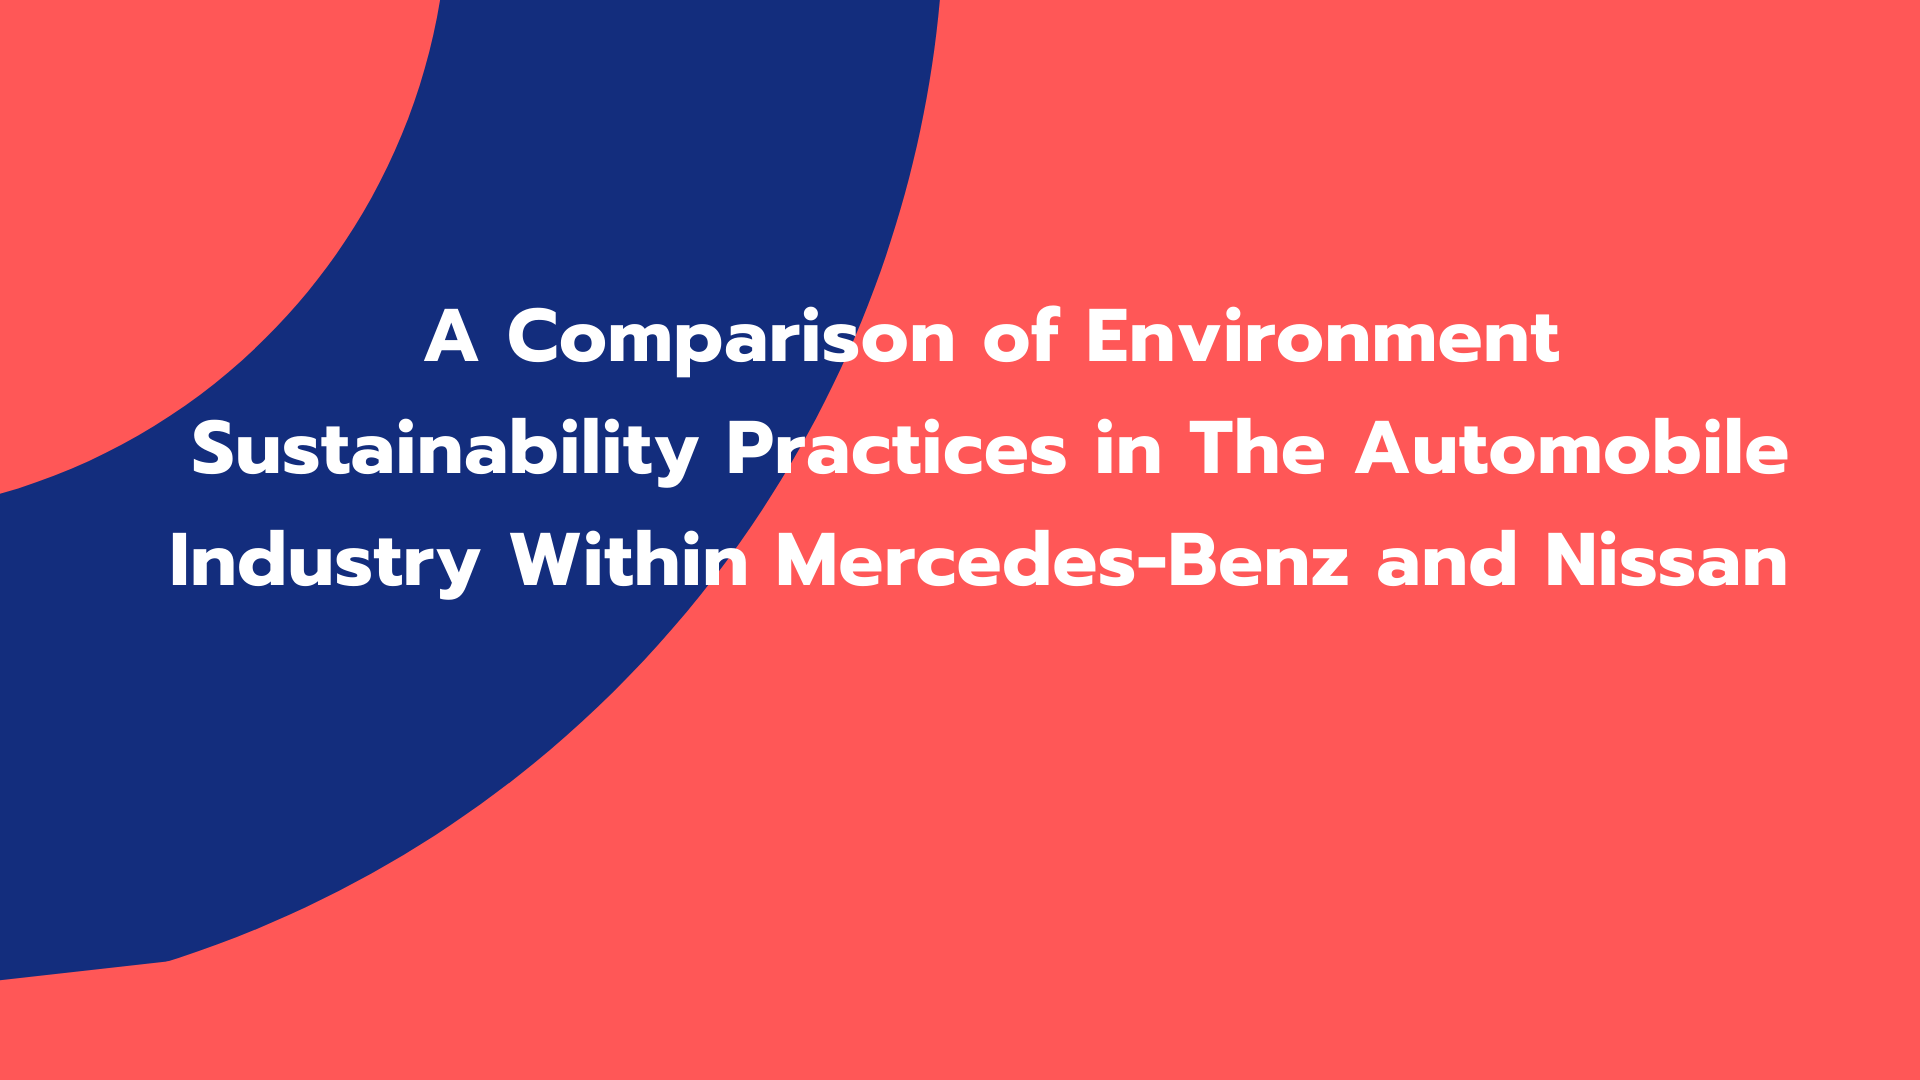 A Comparison of Environment Sustainability Practices in The Automobile Industry Within Mercedes-Benz and Nissan